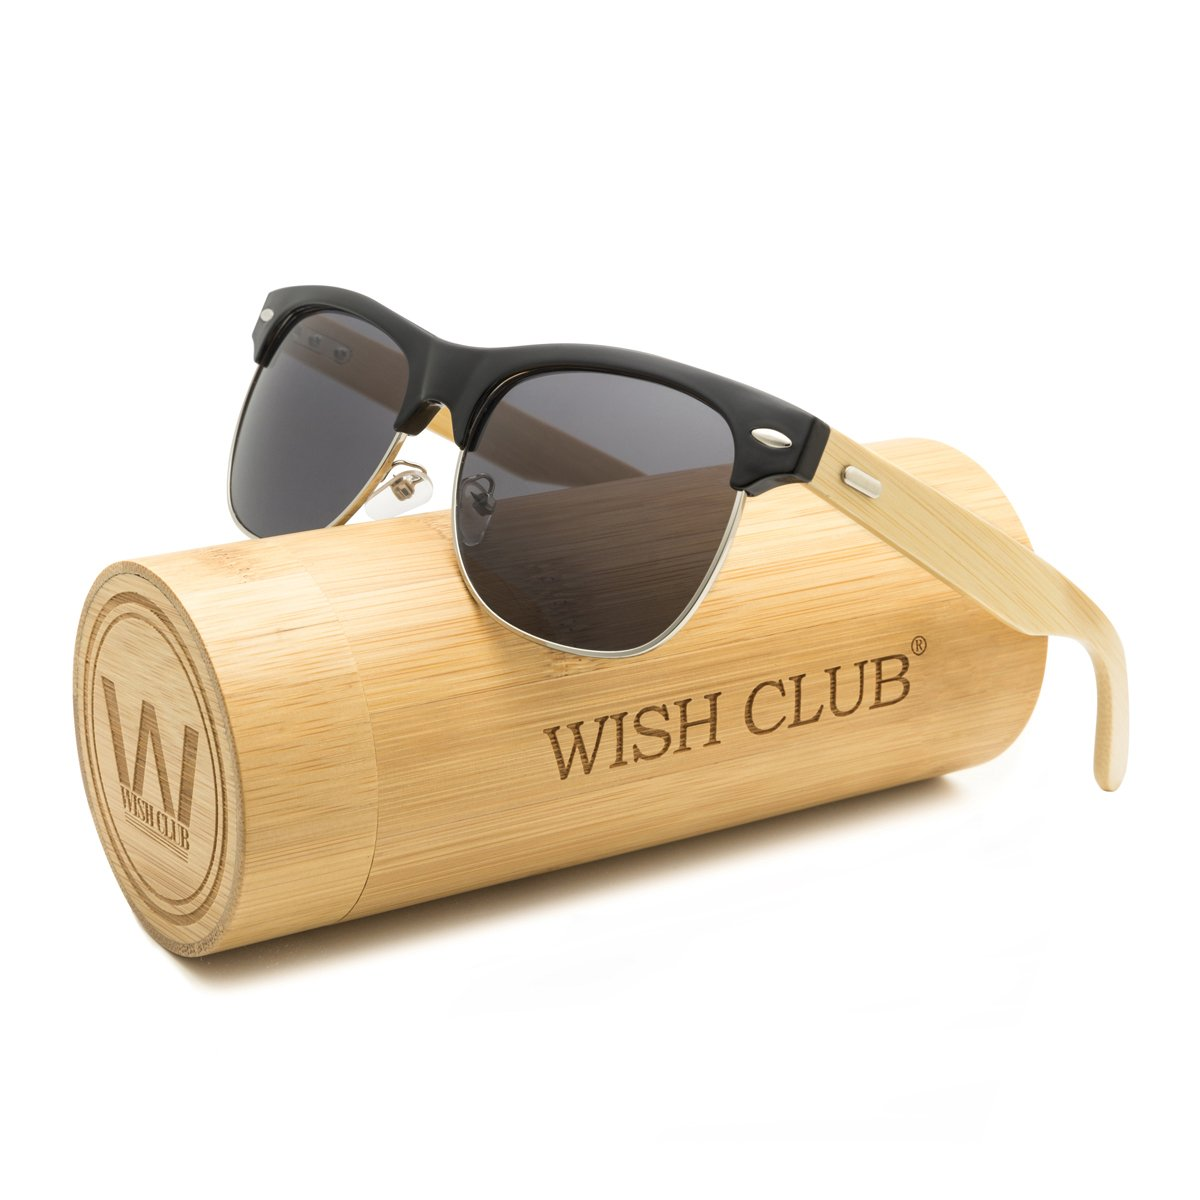 WISH CLUB Wood Clubmaster Sunglasses for Men with UV 400 Square Handmade with Bamboo Box (Grey)